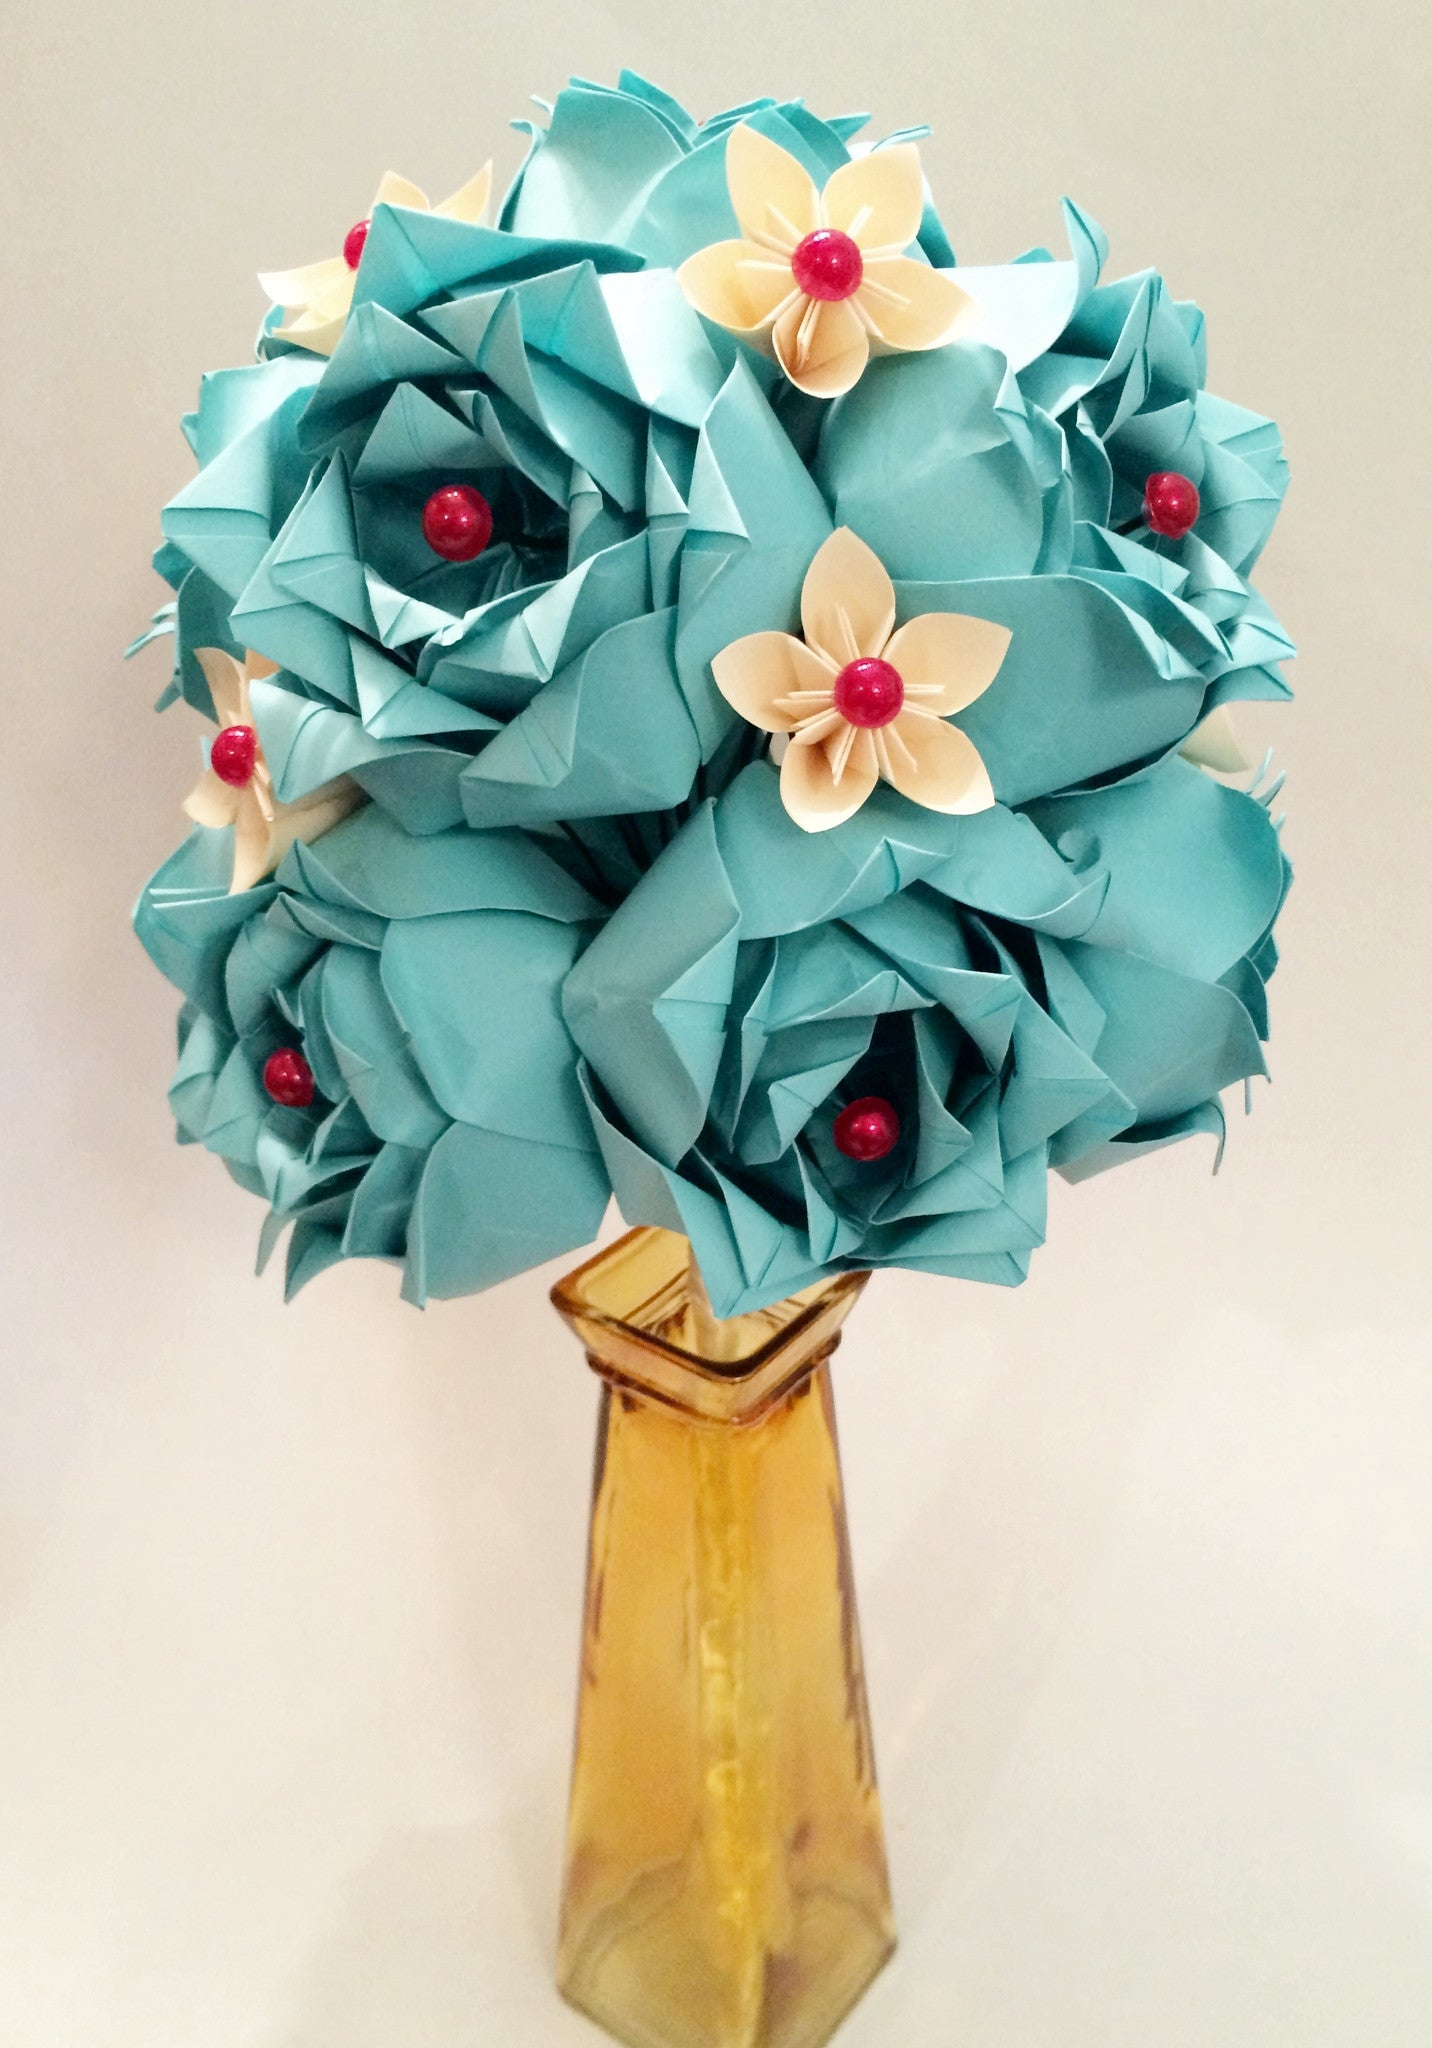 Custom Dozen Deluxe Roses- Your choice of accent colors